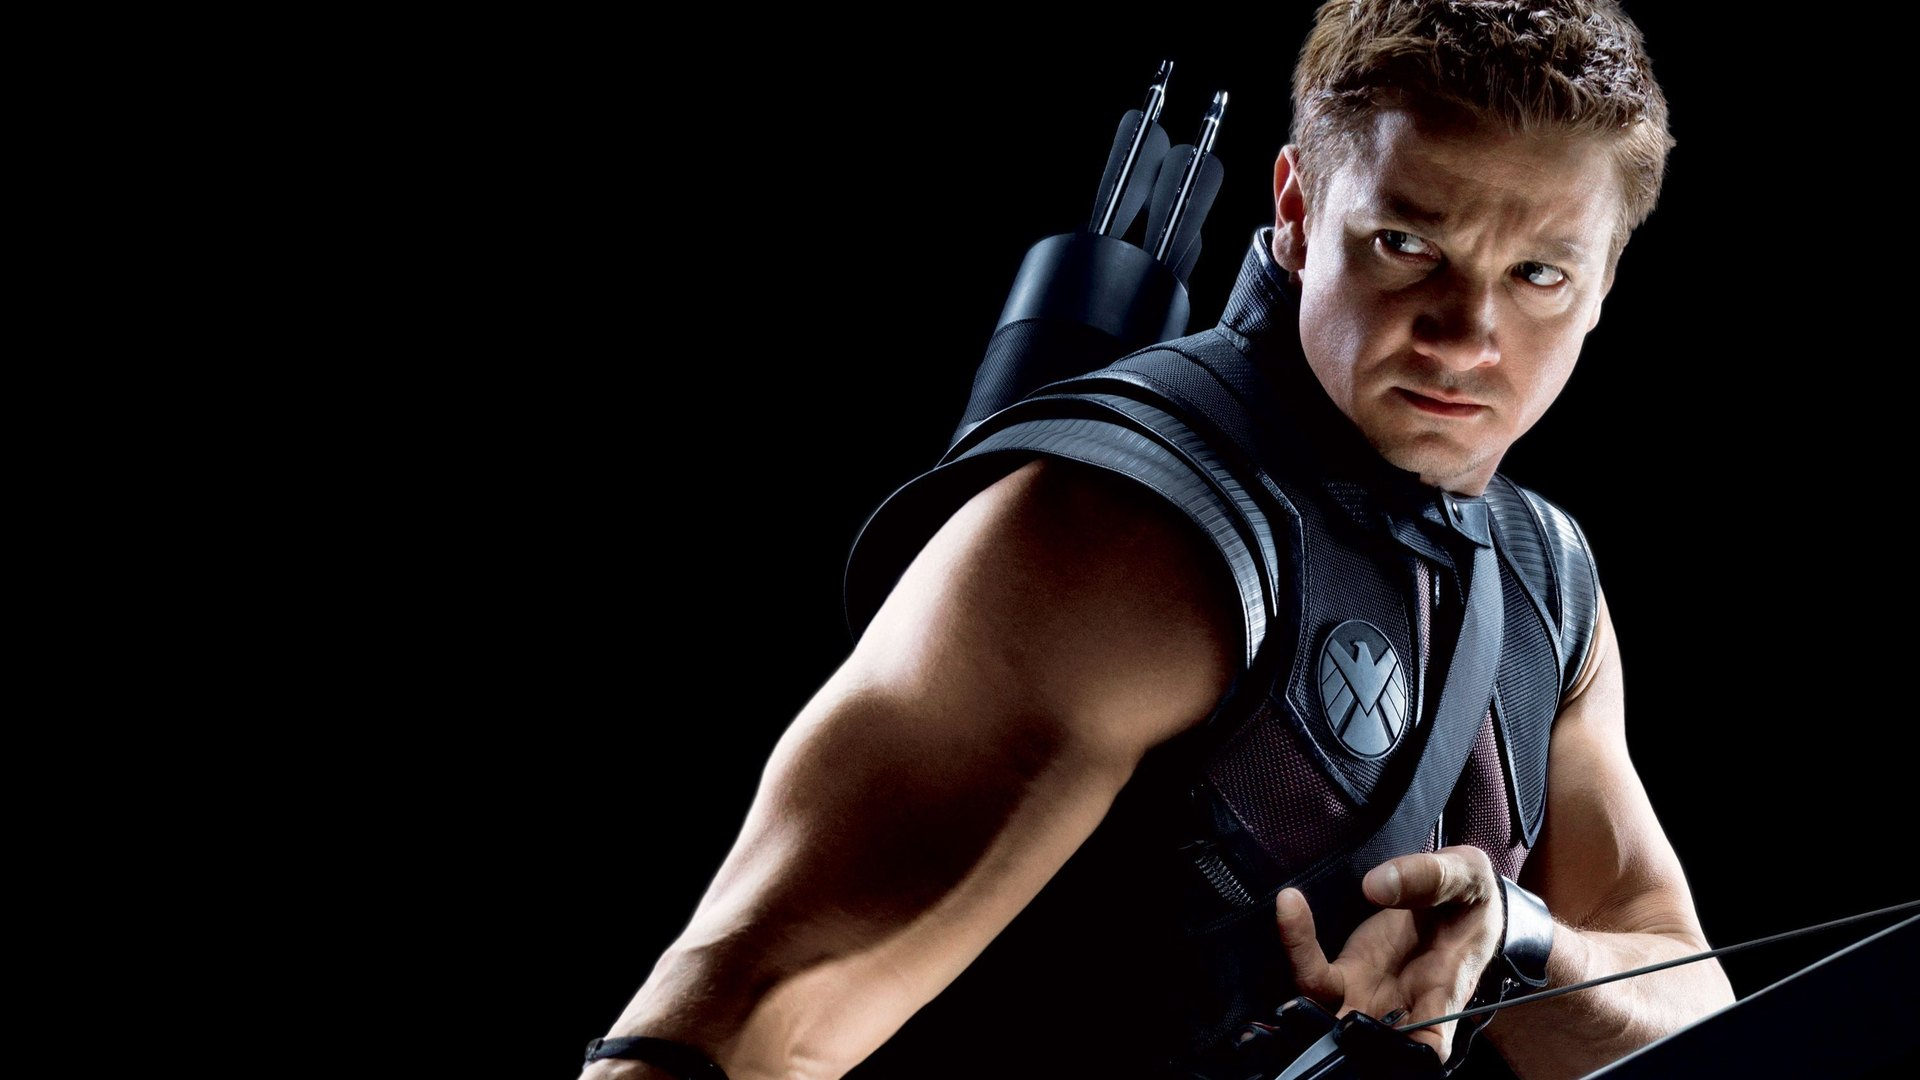 1920x1080 - Jeremy Renner Wallpapers 26